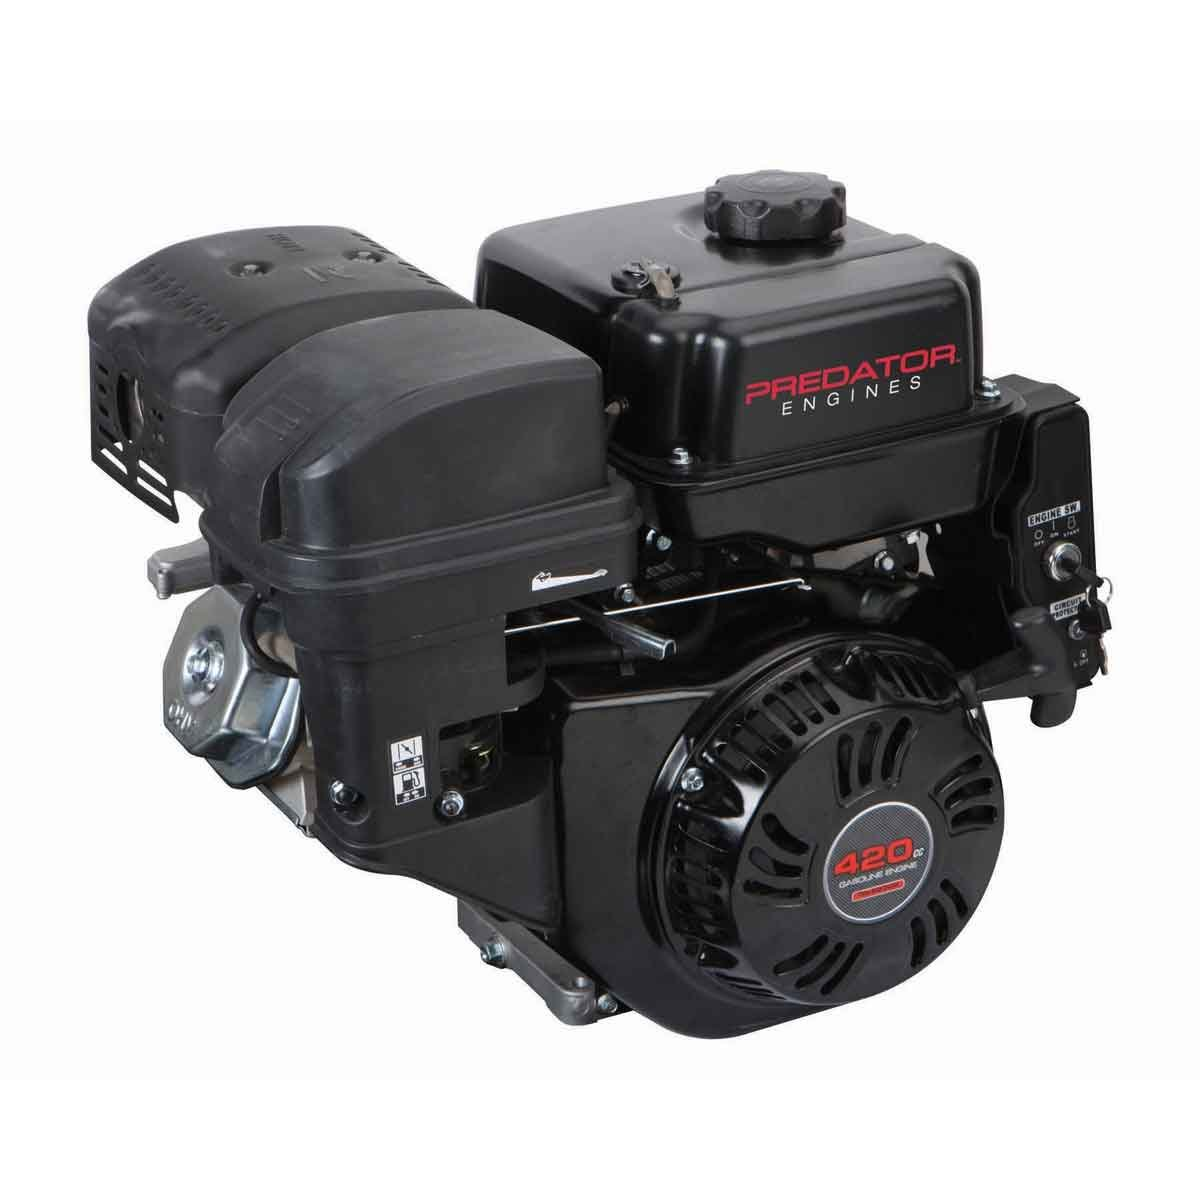 Amazon.com : Predator Engine 420cc (13 HP) Harbor Freight : Garden & Outdoor